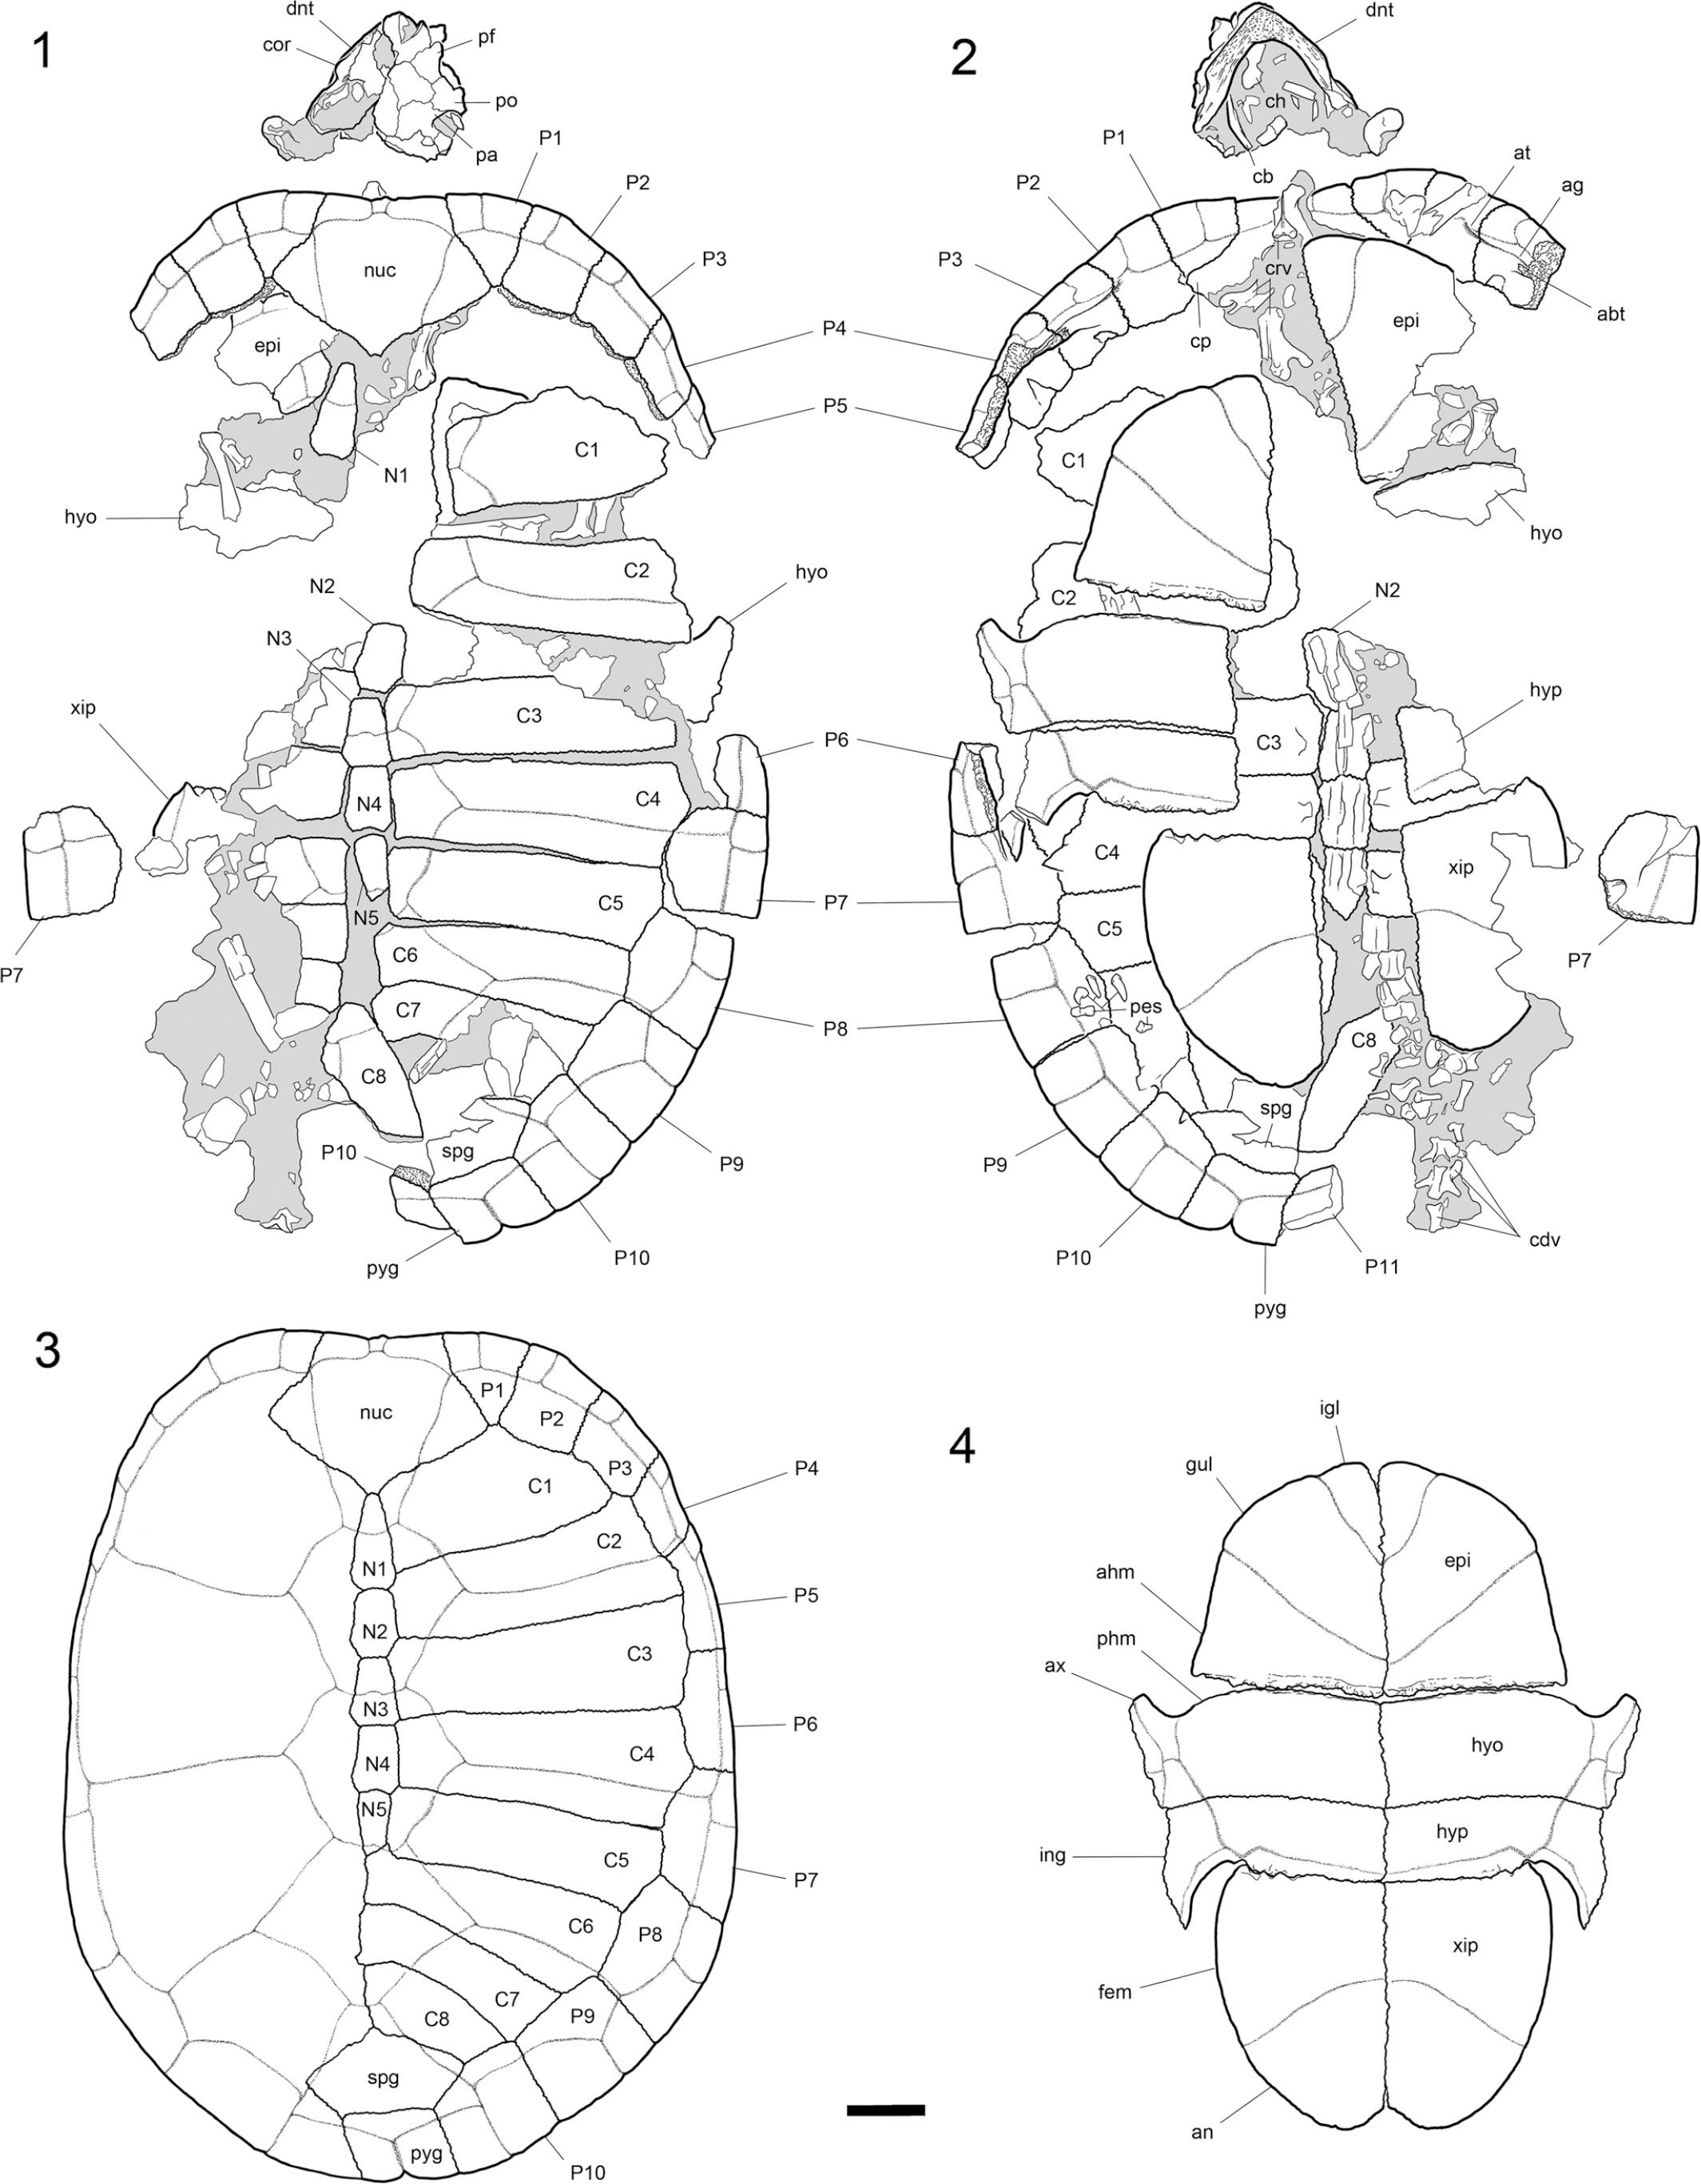 New mud turtles (Kinosternidae, Kinosternon) from the middle